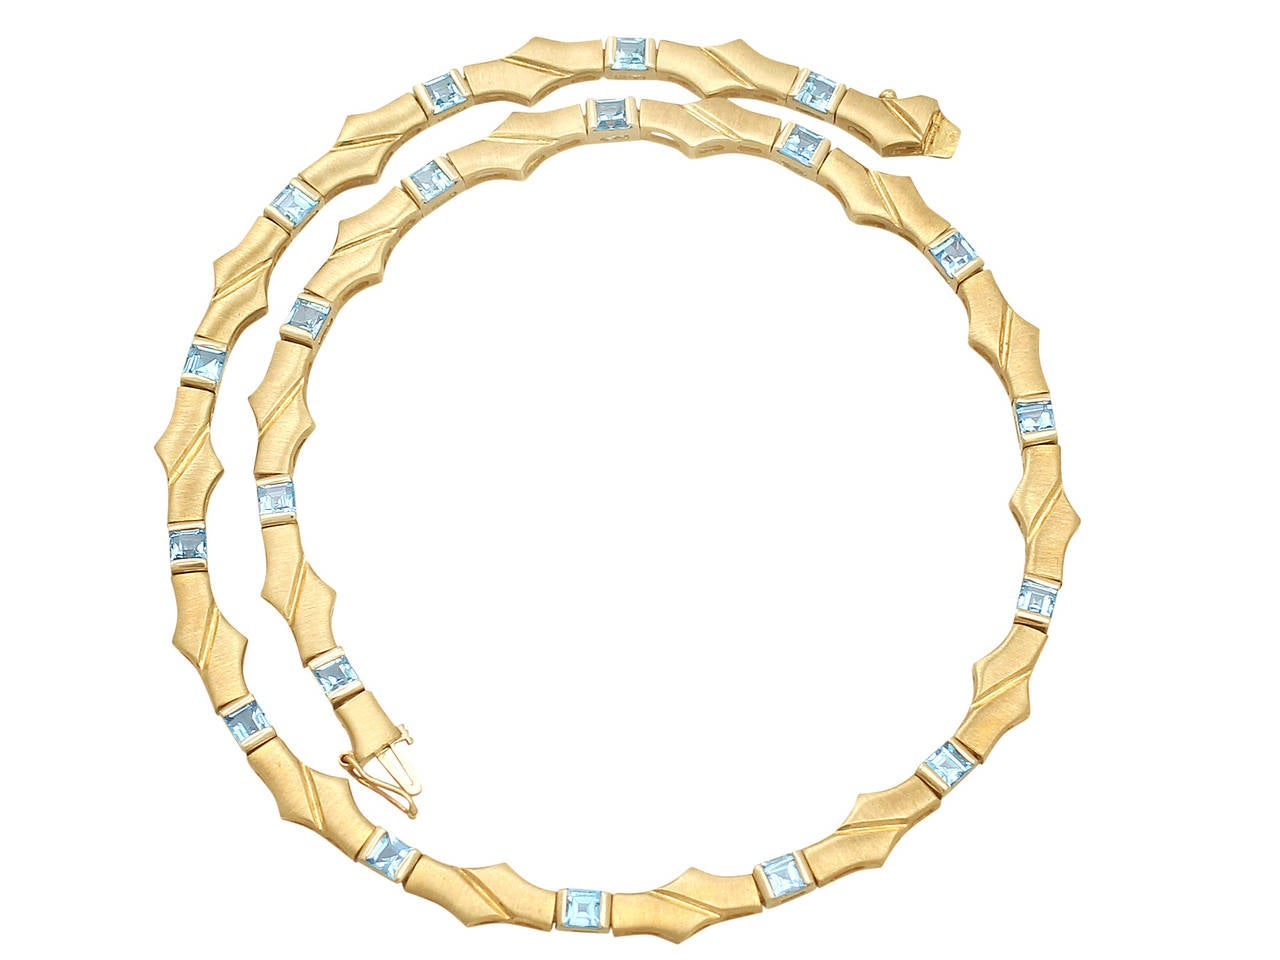 Topaz and 9k Yellow Gold Necklace - Vintage Circa 1960 For Sale at ...